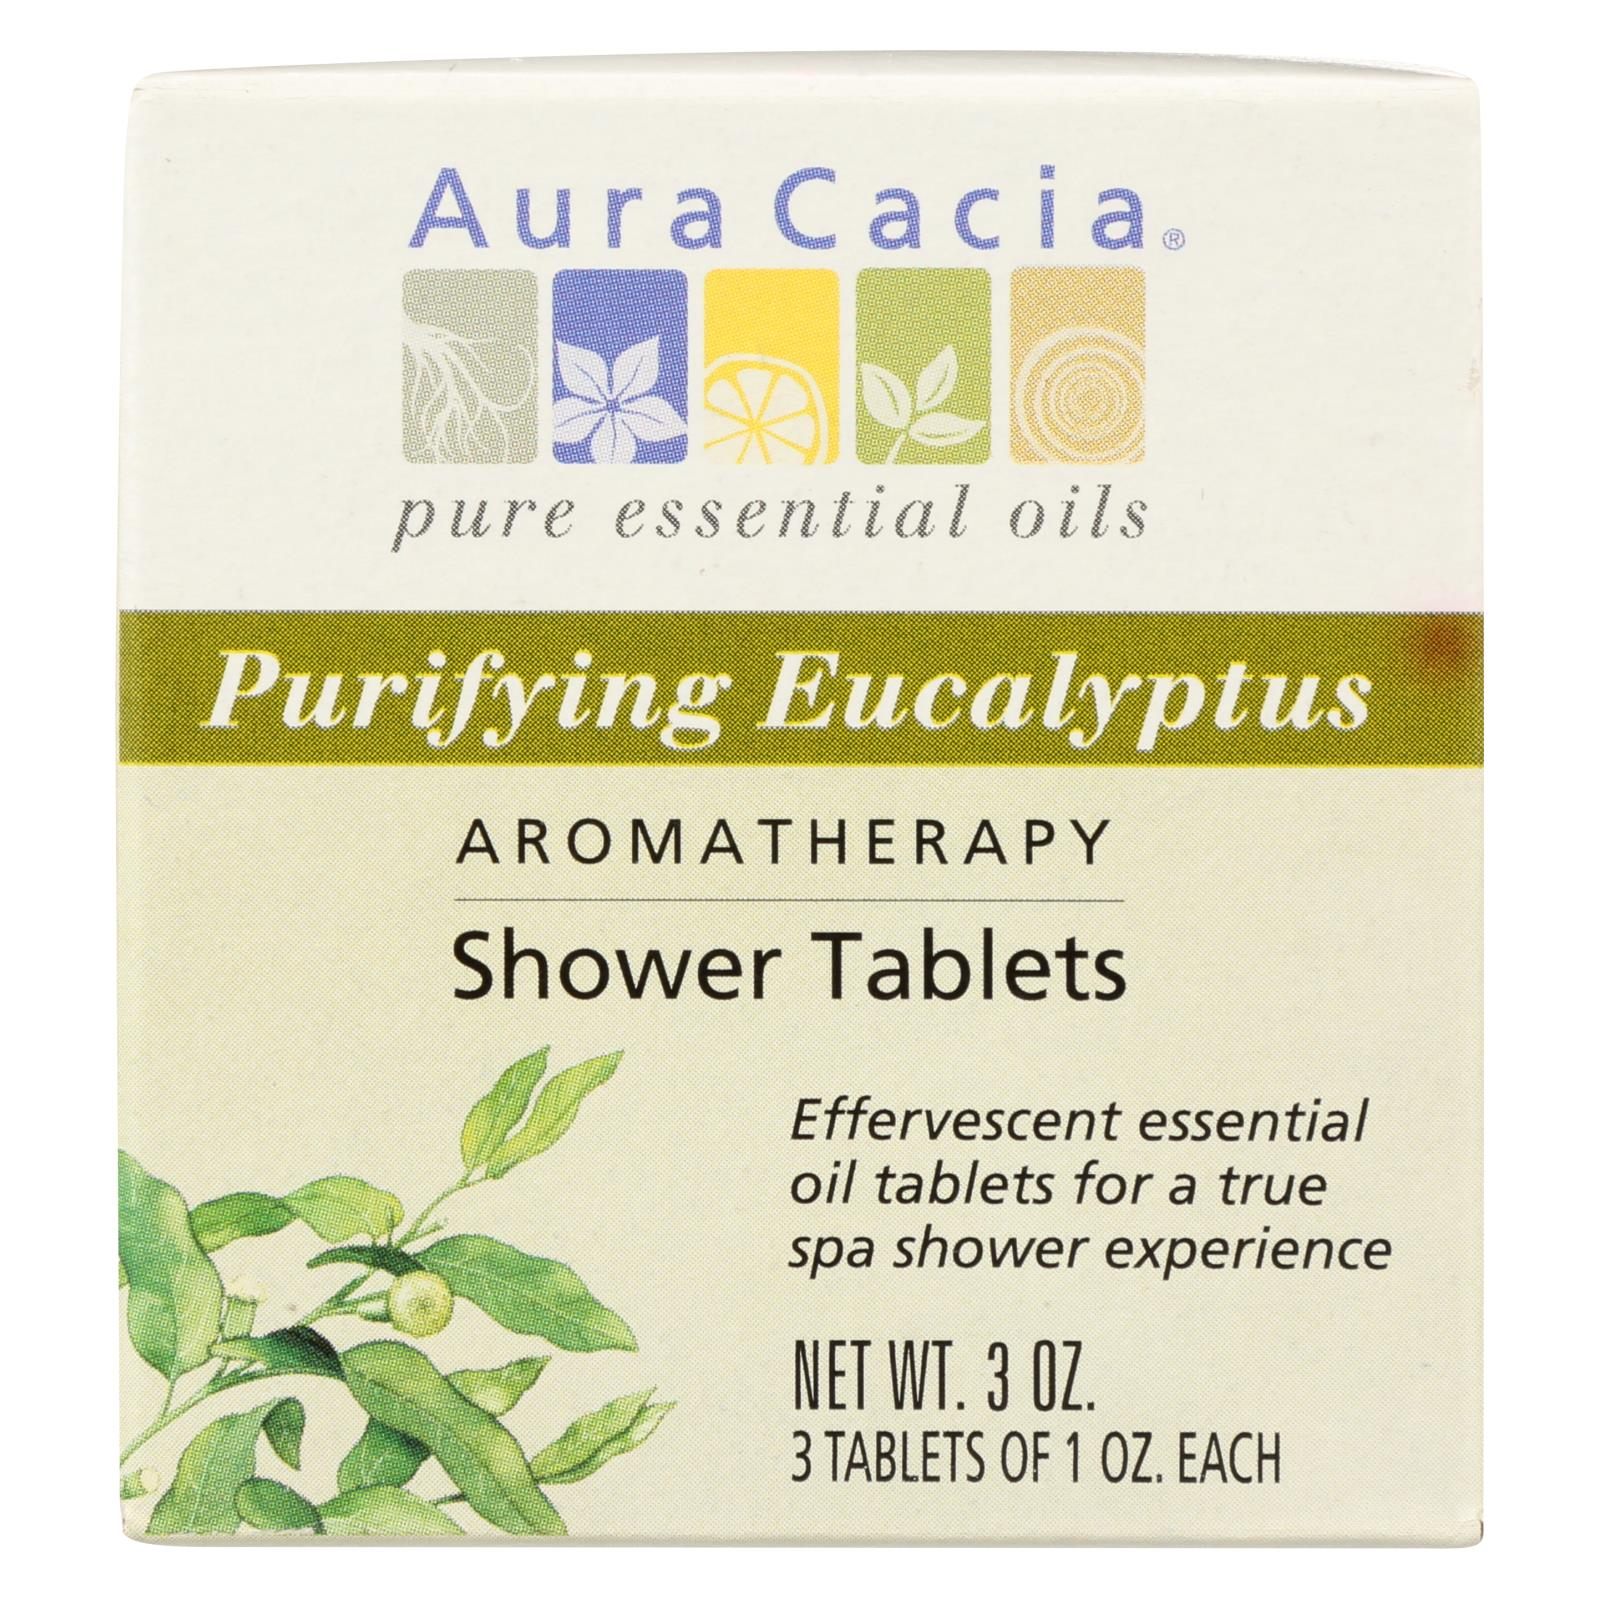 Aura Cacia - Purifying Aromatherapy Shower Tablets Eucalyptus - 3 Tablets